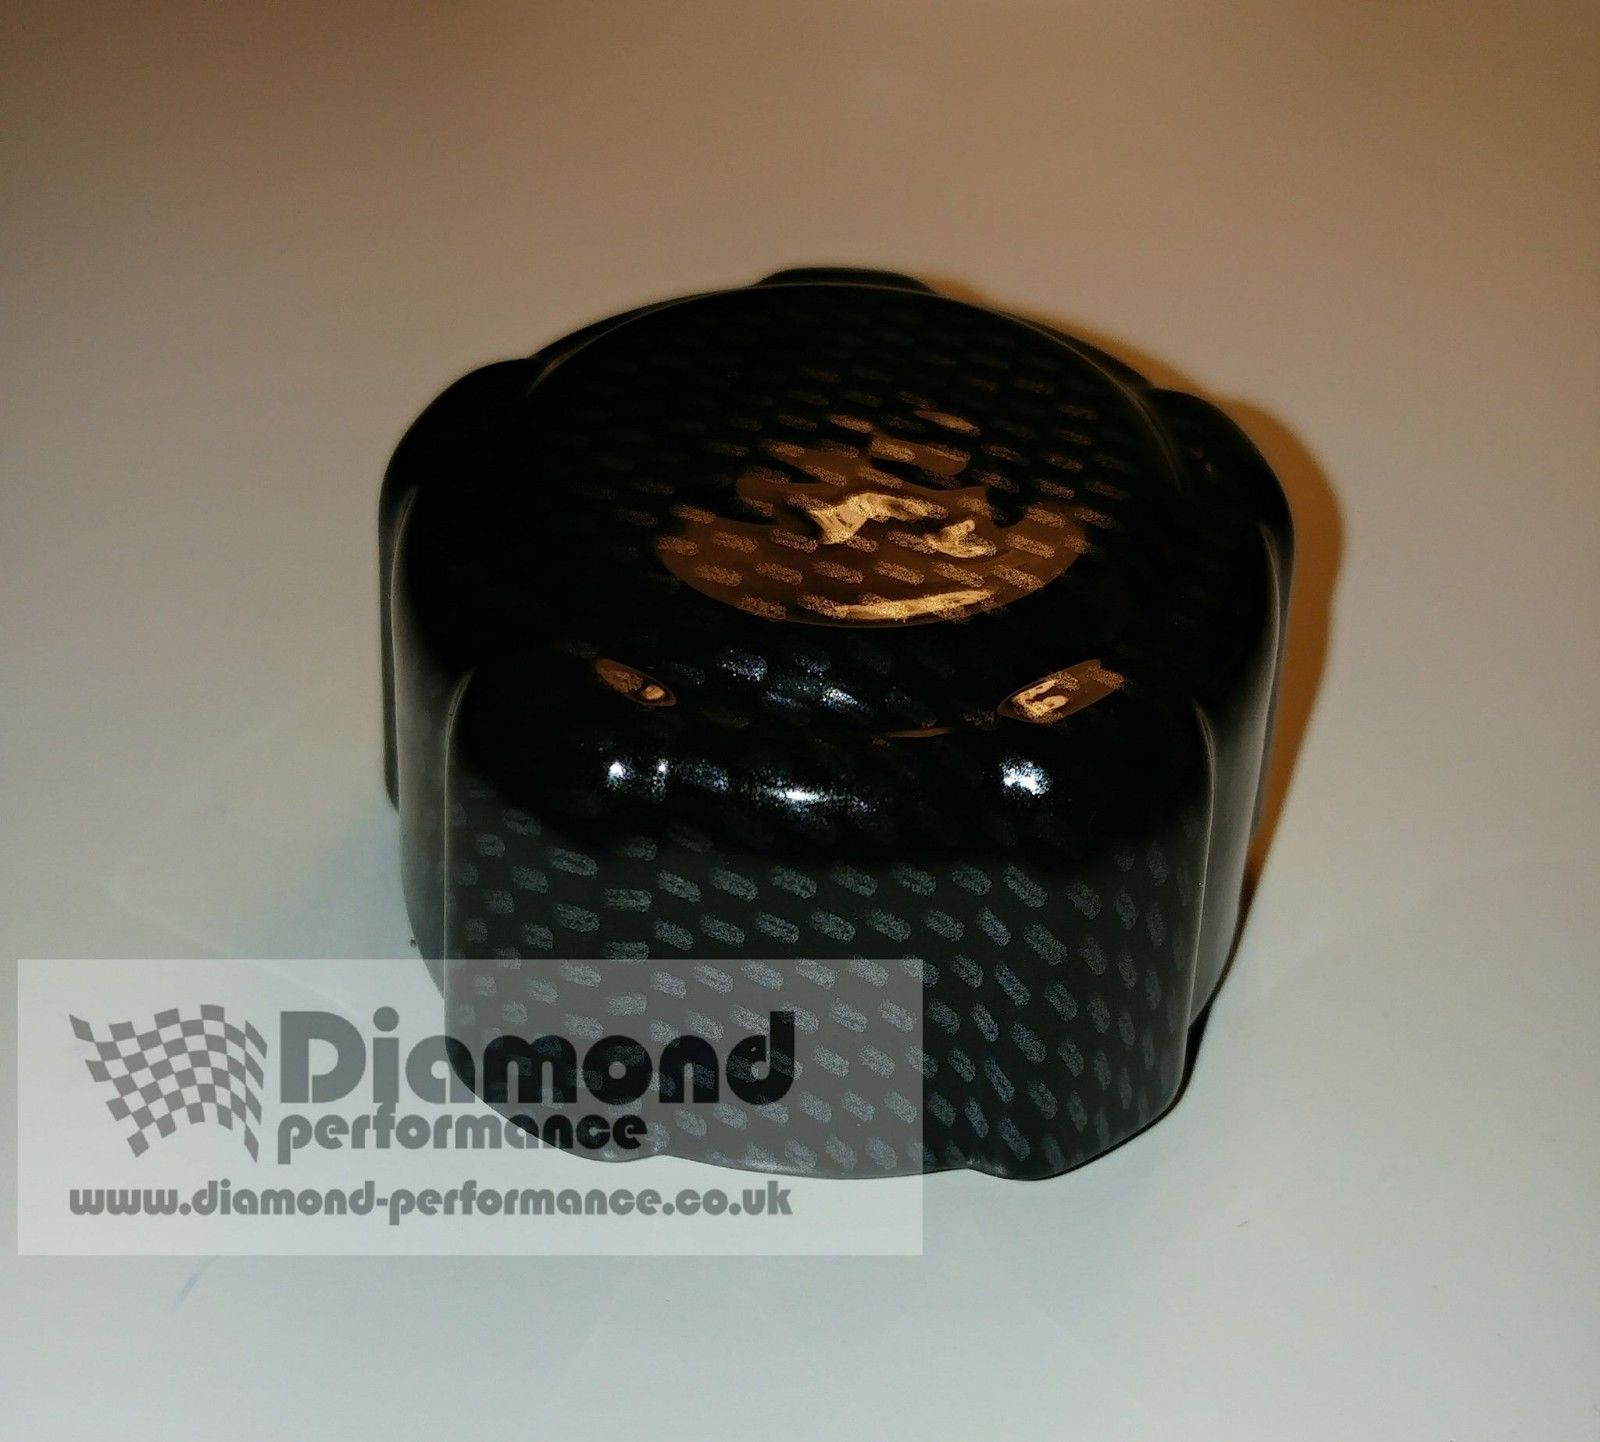 clio 4 mk4 all models coolant bottle cap and cover carbon fibre effect offer diamond. Black Bedroom Furniture Sets. Home Design Ideas